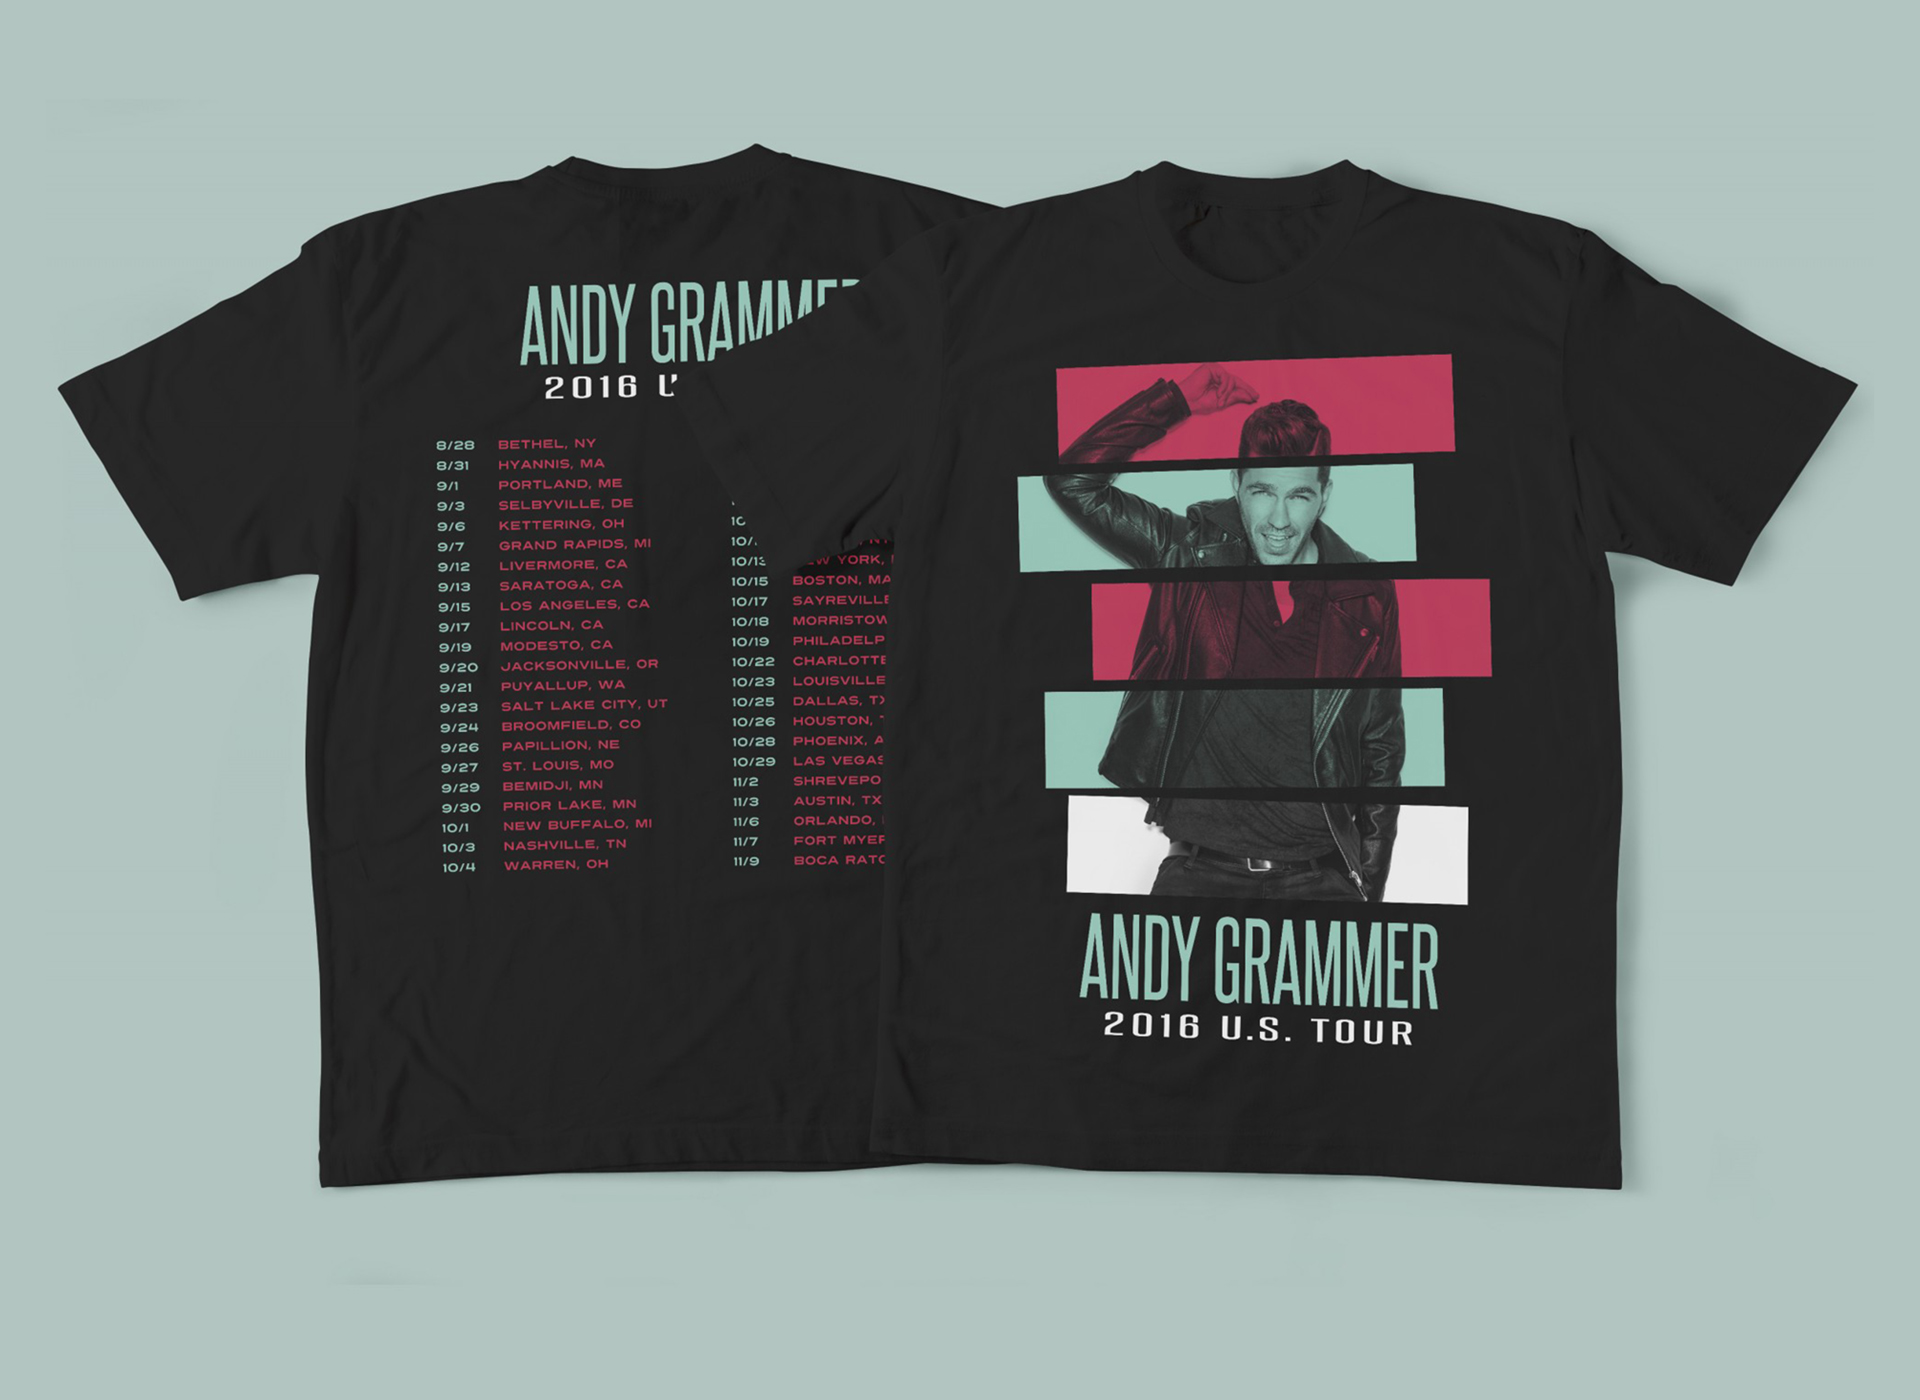 Andy Grammer 2016 Tour